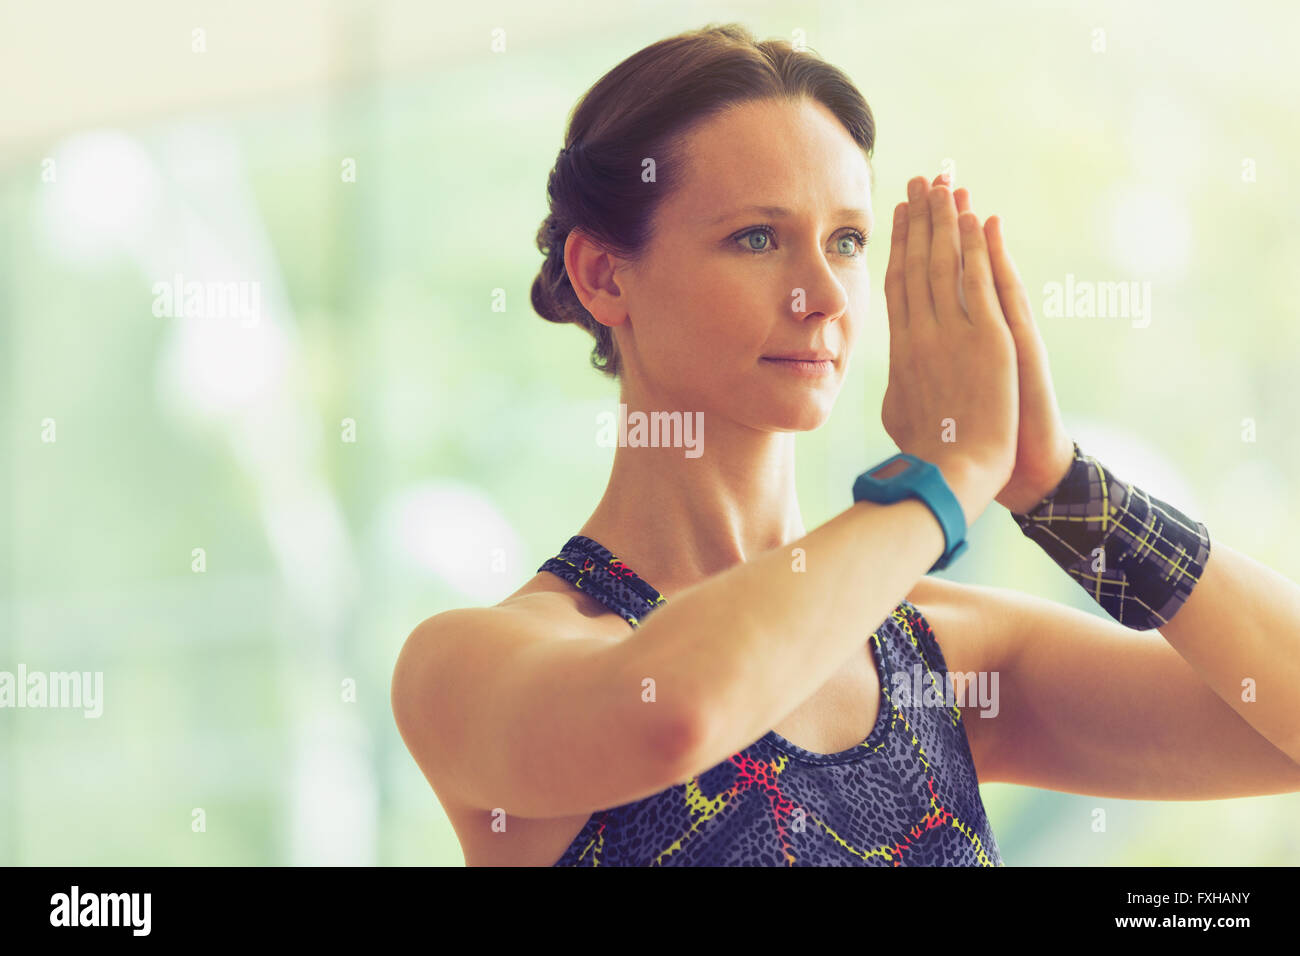 Calm woman with hands at prayer position in yoga class - Stock Image